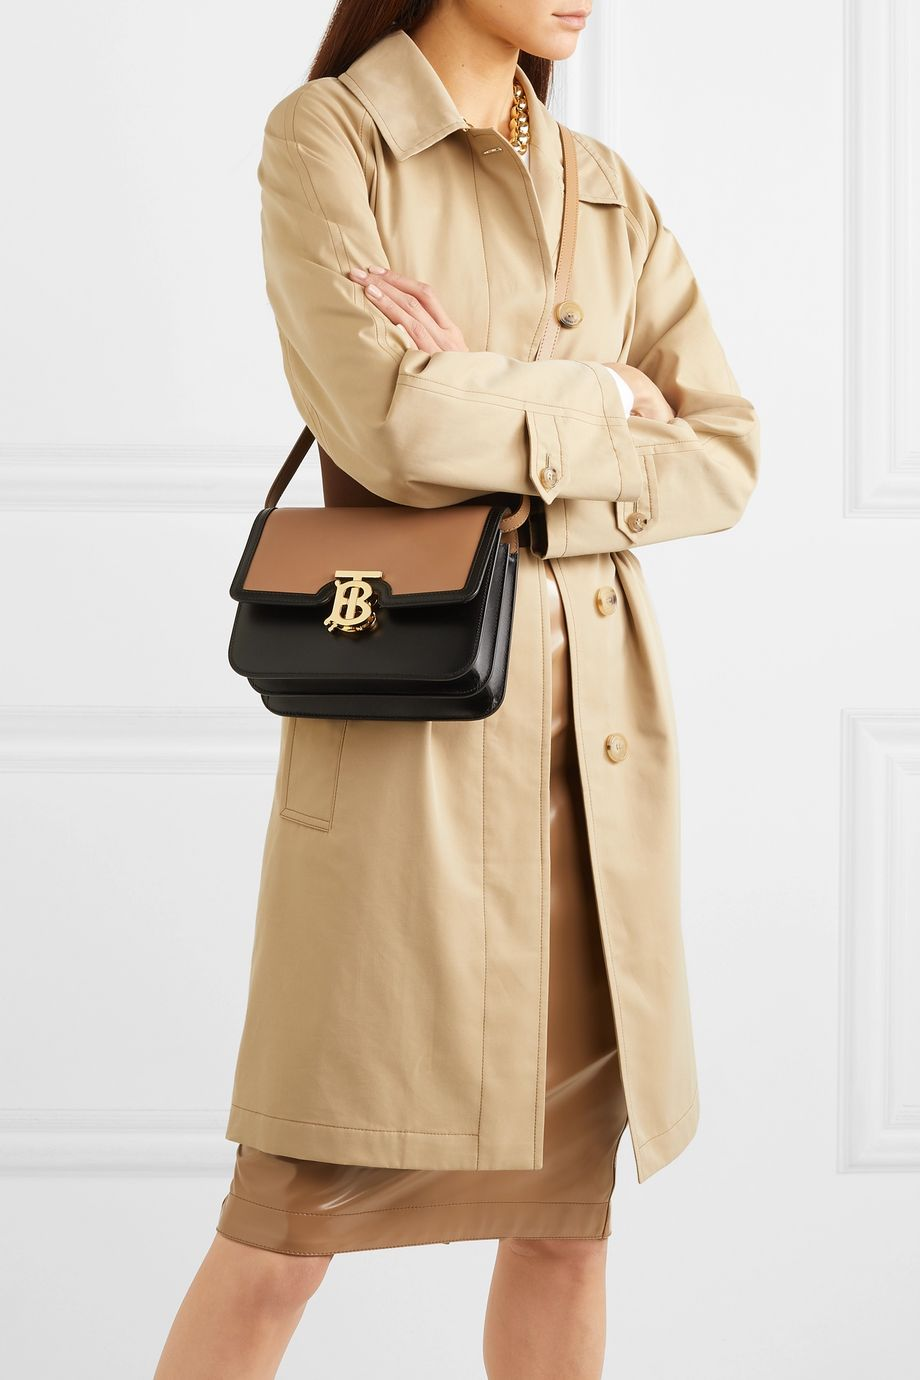 Burberry Small two-tone leather shoulder bag